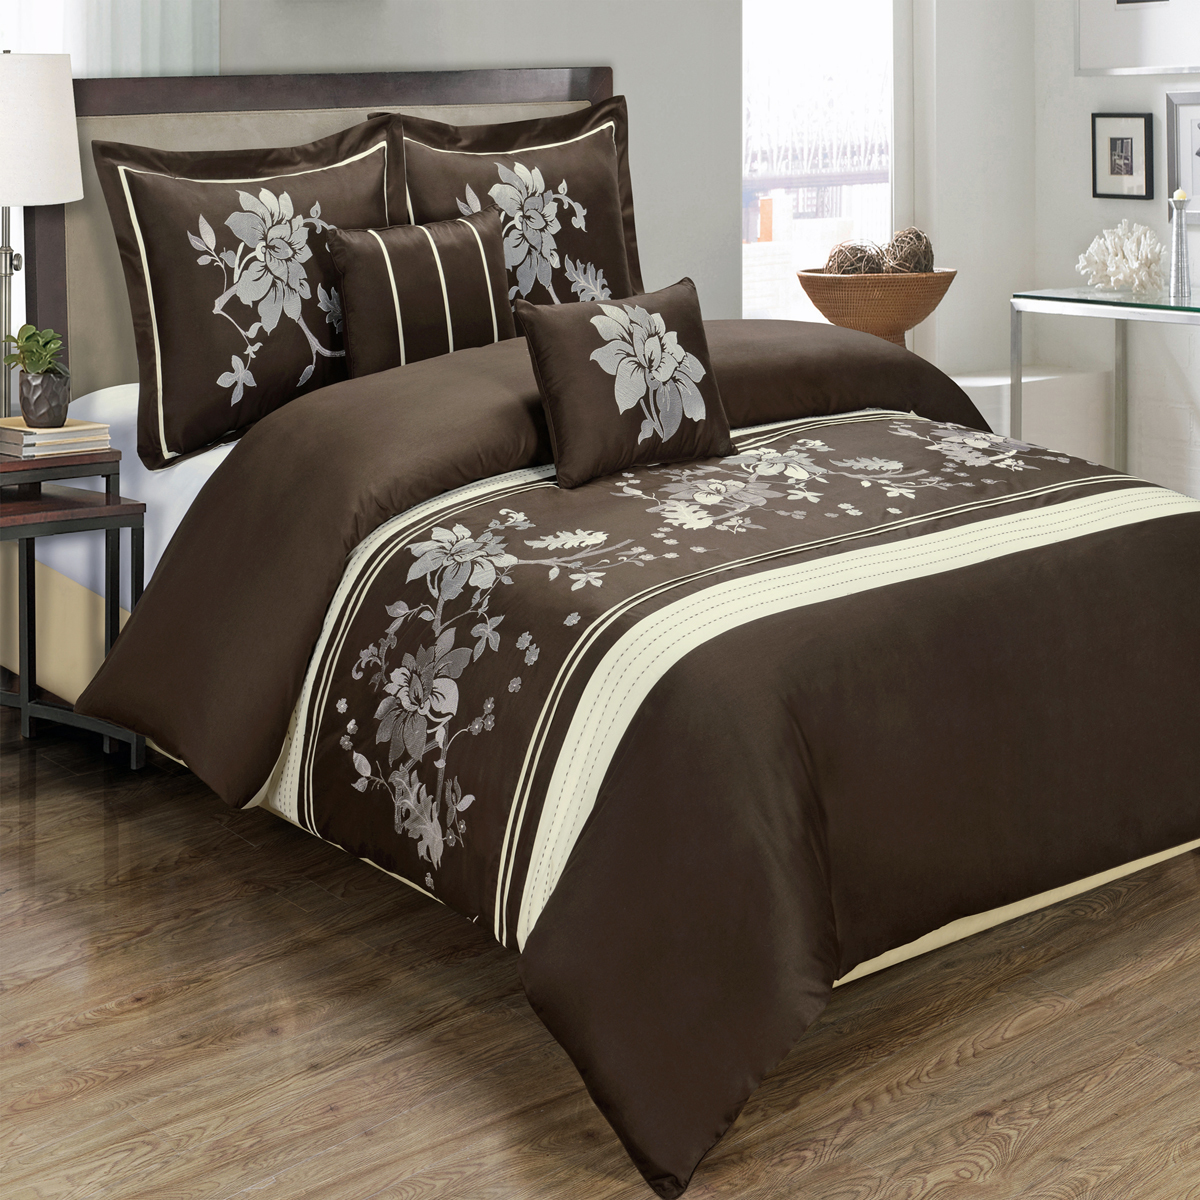 Luxury Myra 100% Cotton 5-Piece Floral Embroidered Duvet Cover AND 2 Shams AND 2 Decorative Pillows Set